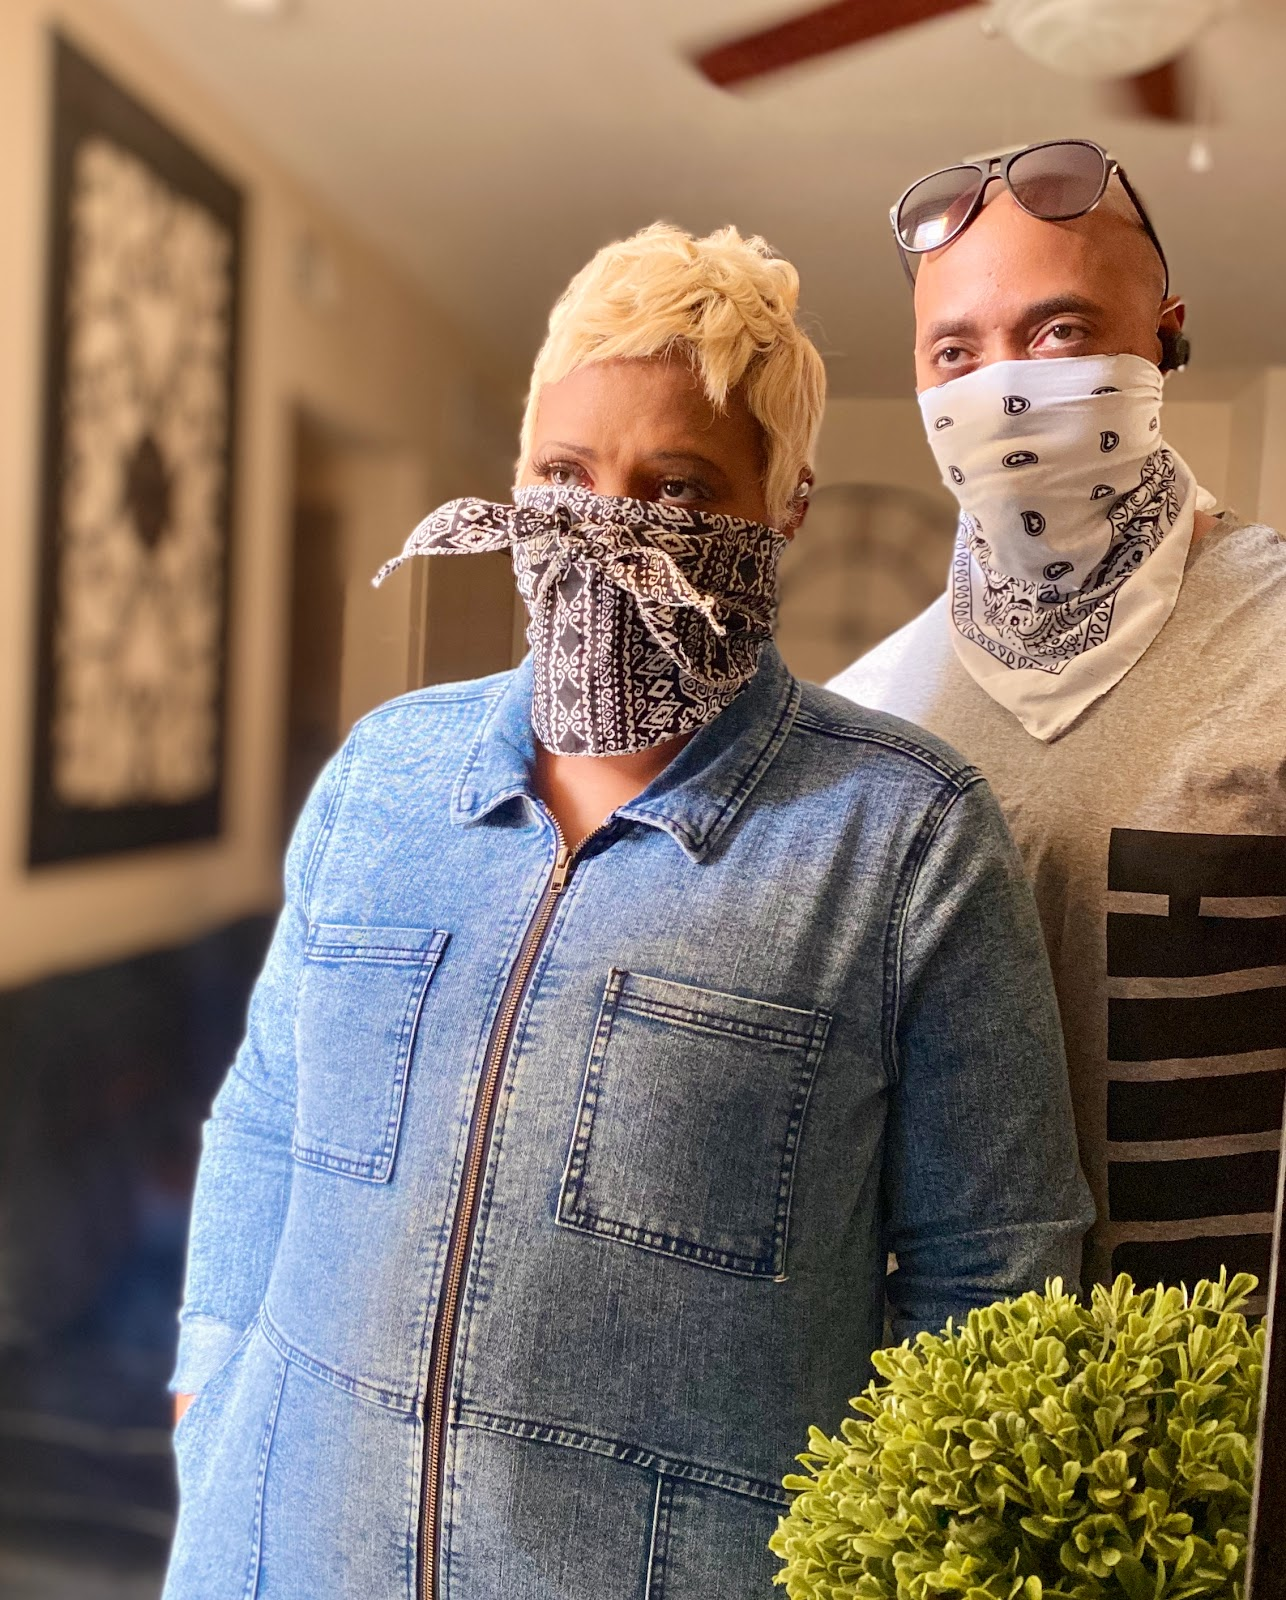 Marriage Babbles: Get Out The Bathroom. Rico and Tangie sharing their isolation mask outfits. Marriage Babbles: Get Out The Bathroom.